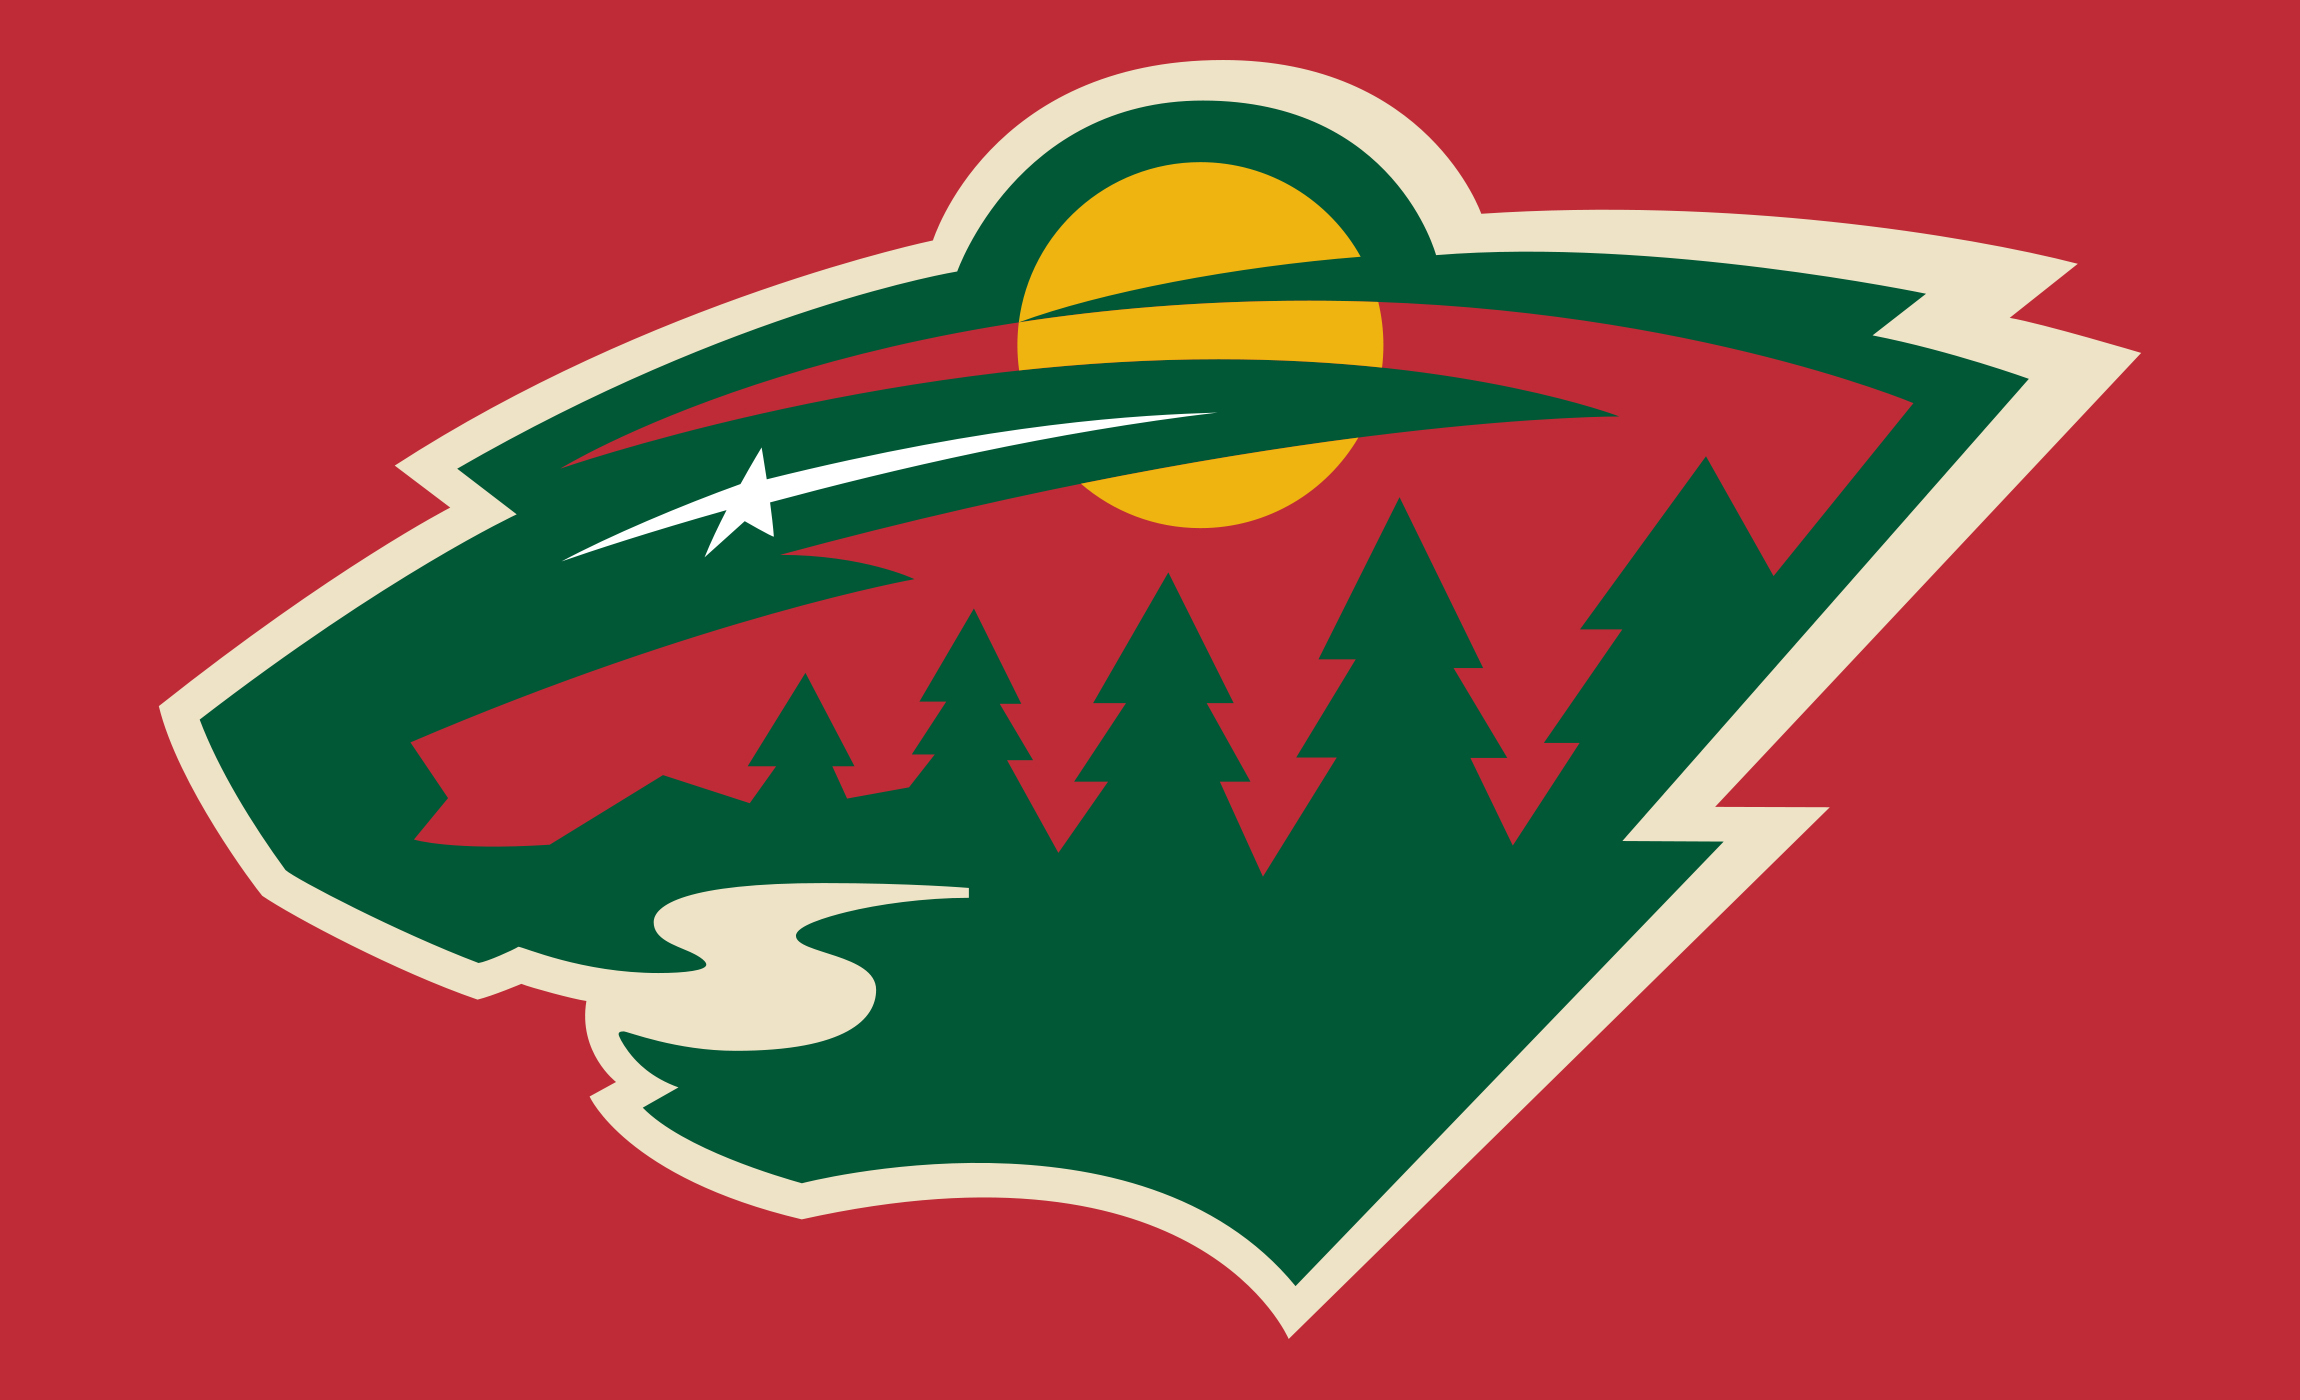 The Minnesota Wild Logo Itself Is Built Around A Forest Landscape It Nighttime As Star Or Even Comet Can Be Seen In Sky